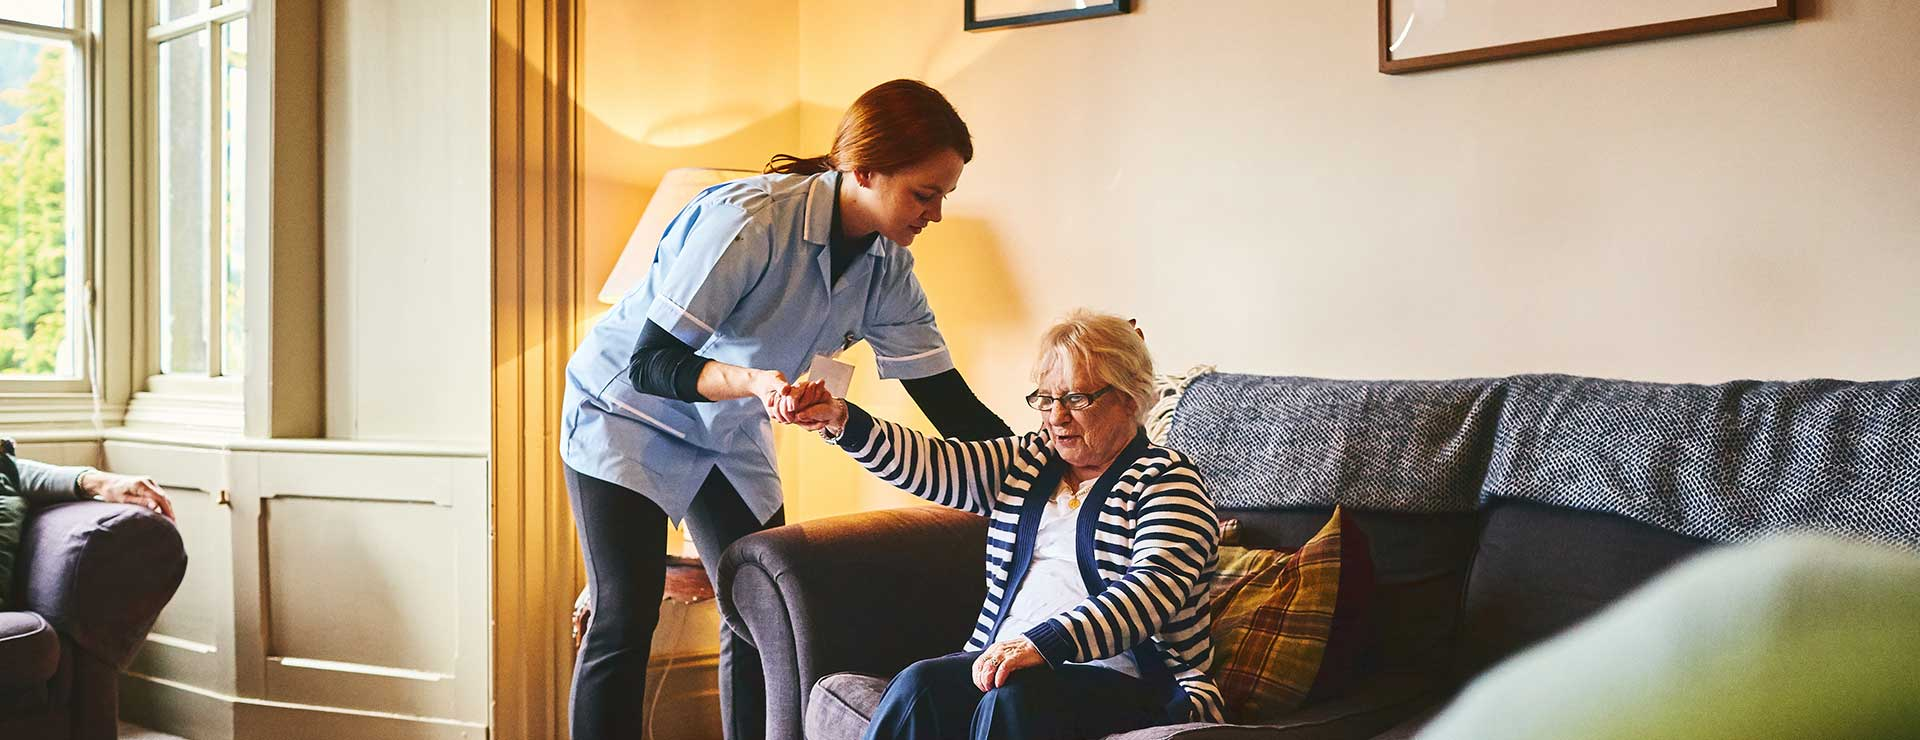 A caregiver helping woman off the couch